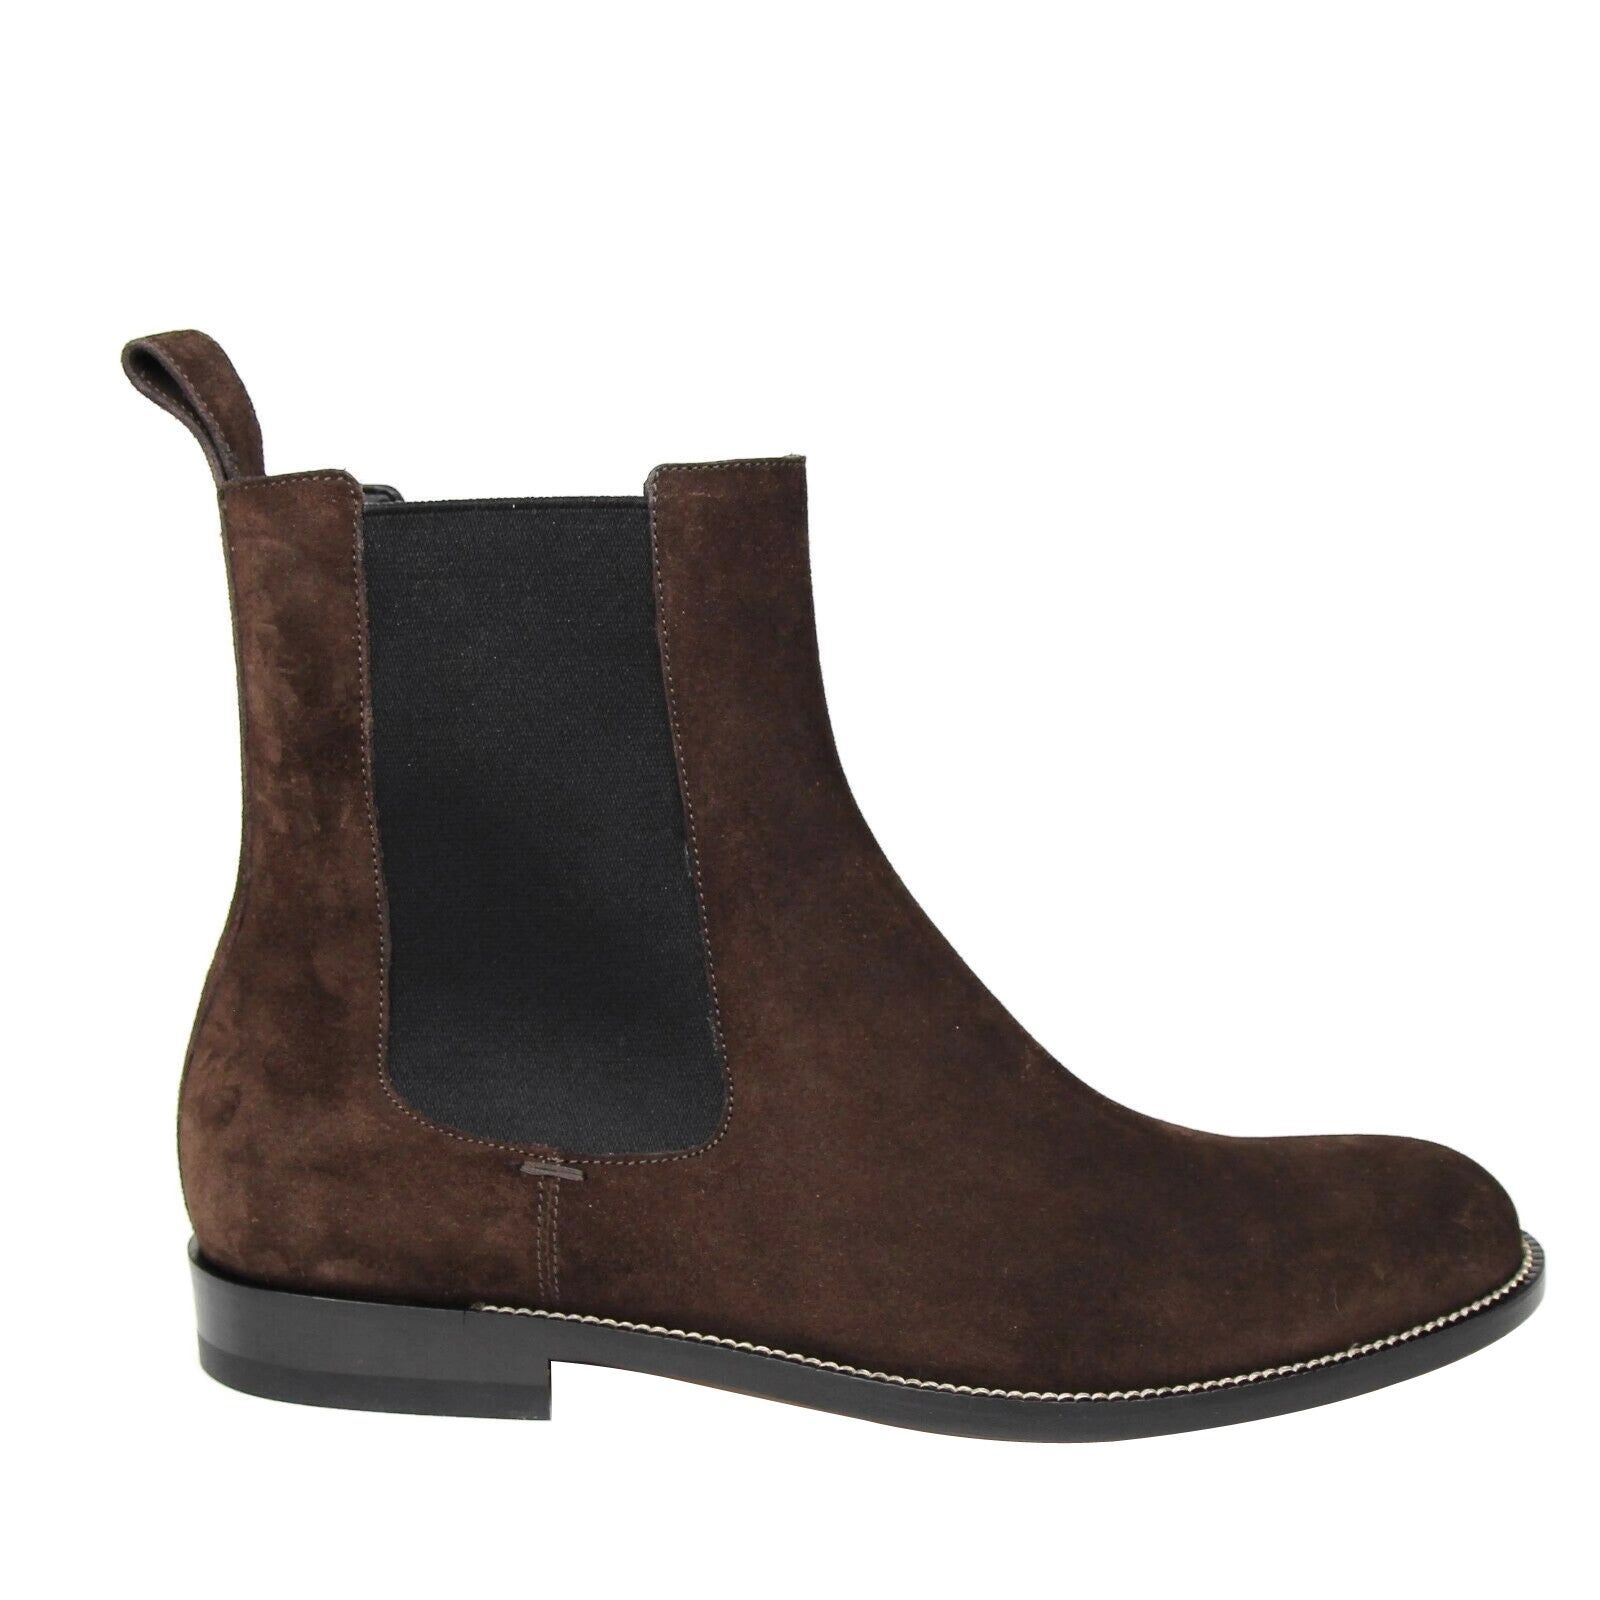 0ce469d37 Gucci Men's Dark Brown Suede Chelsea Boot with Elastic Sides 256346 2145 ( 9.5 G / 10.5 US) - 9.5 G / 10.5 US